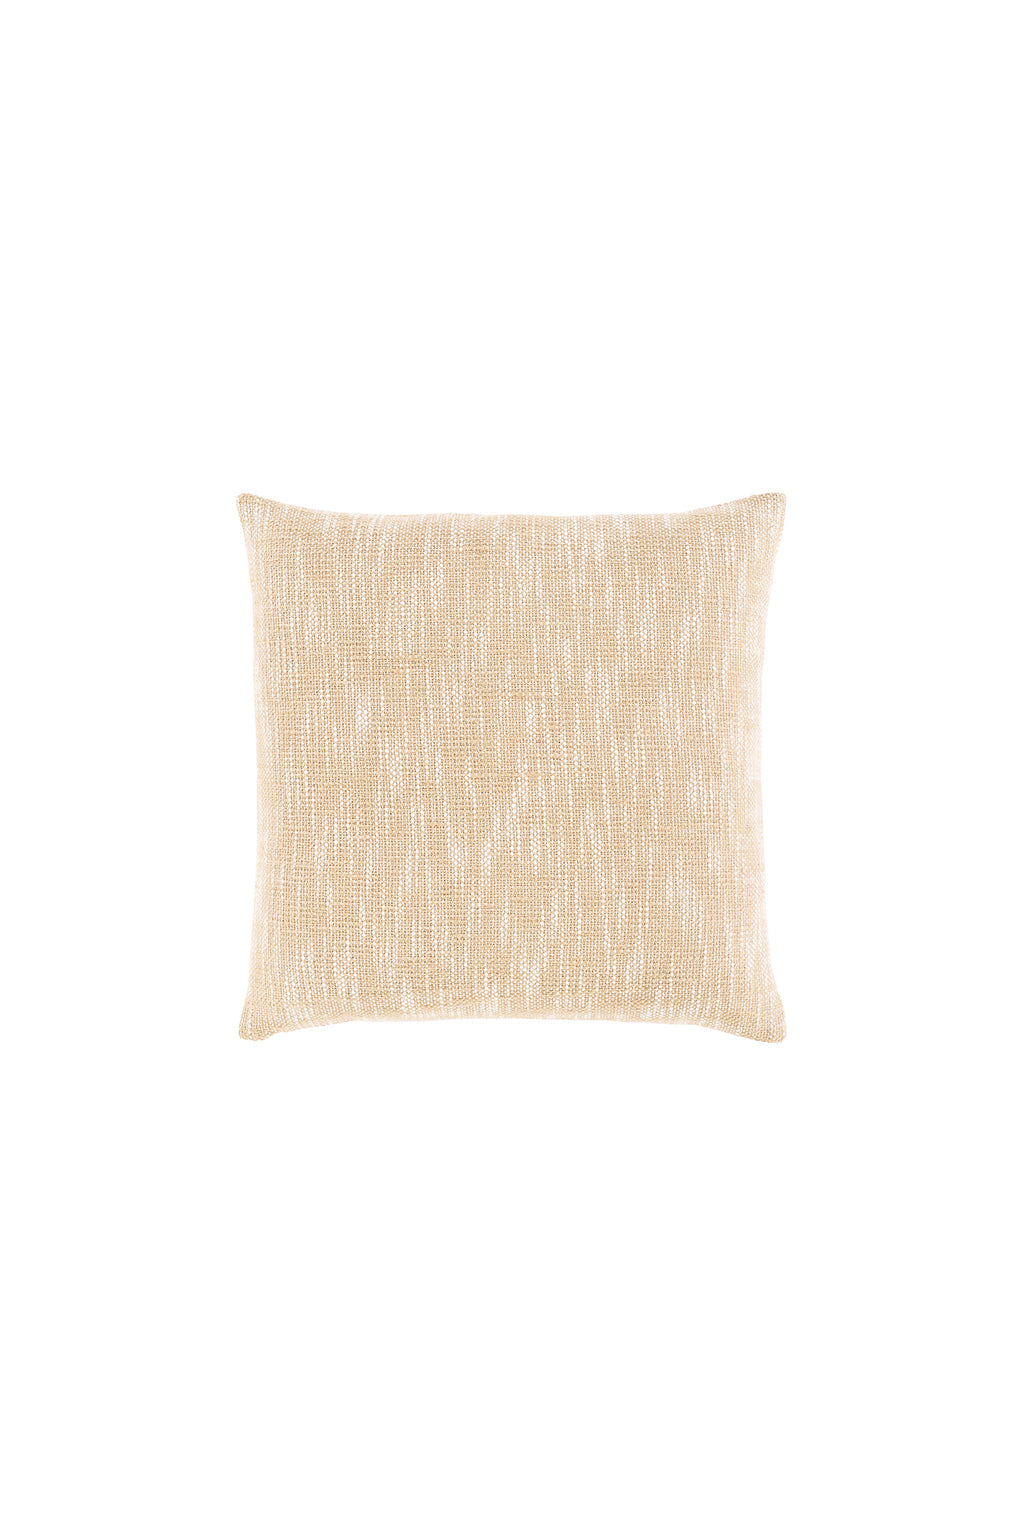 Aptos Pillow Cover